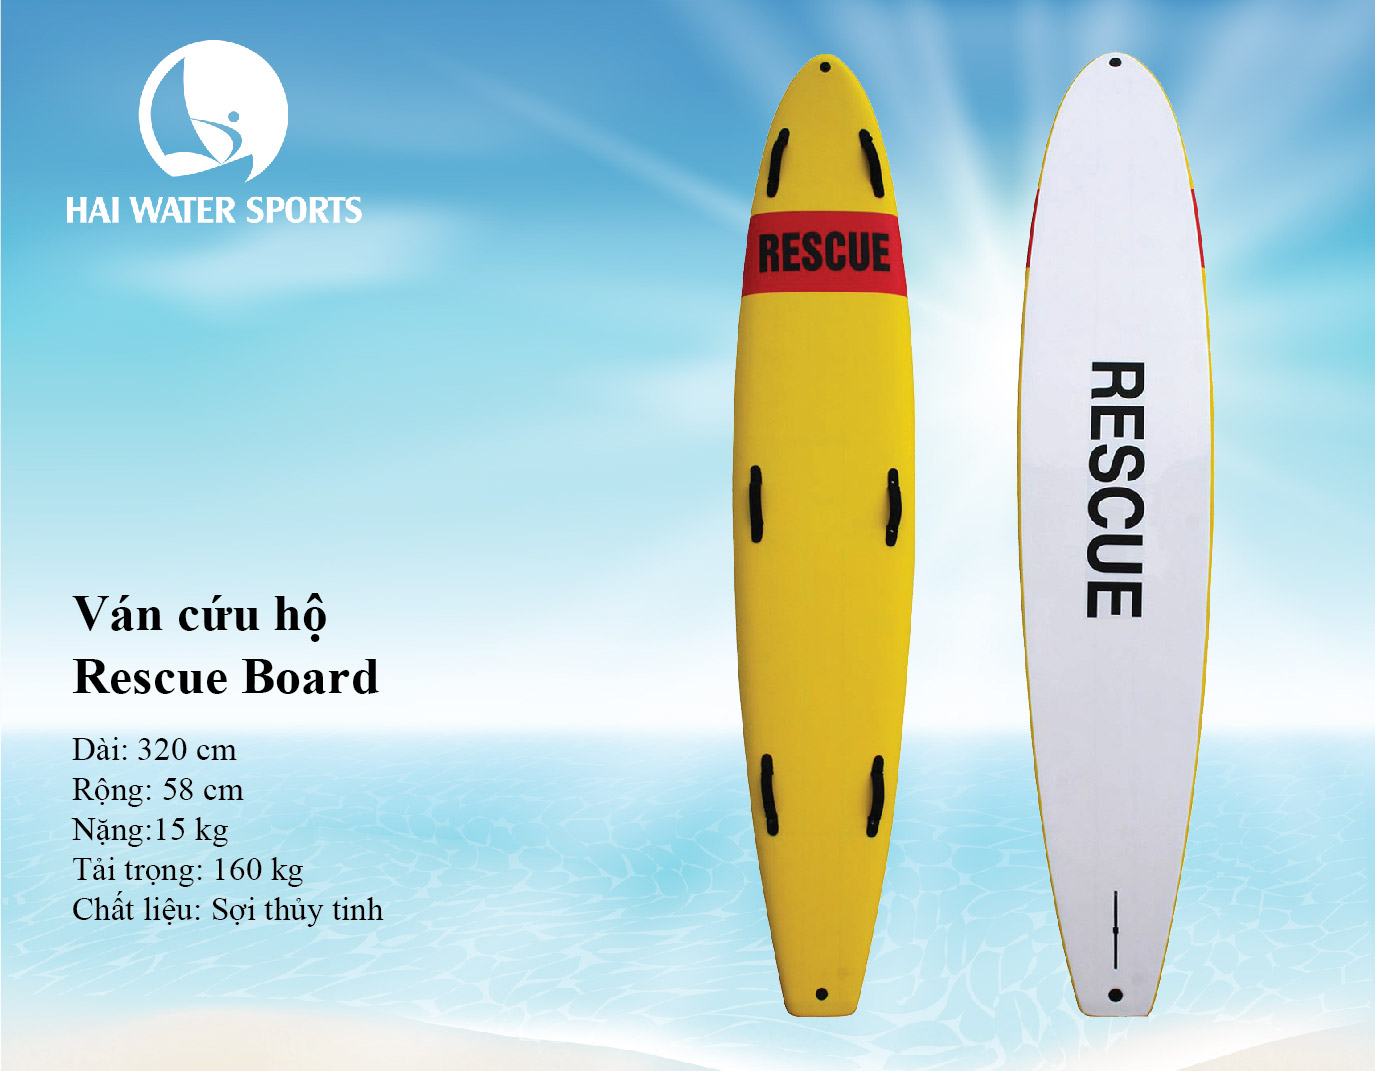 van-cuu-ho-rescue-board-01